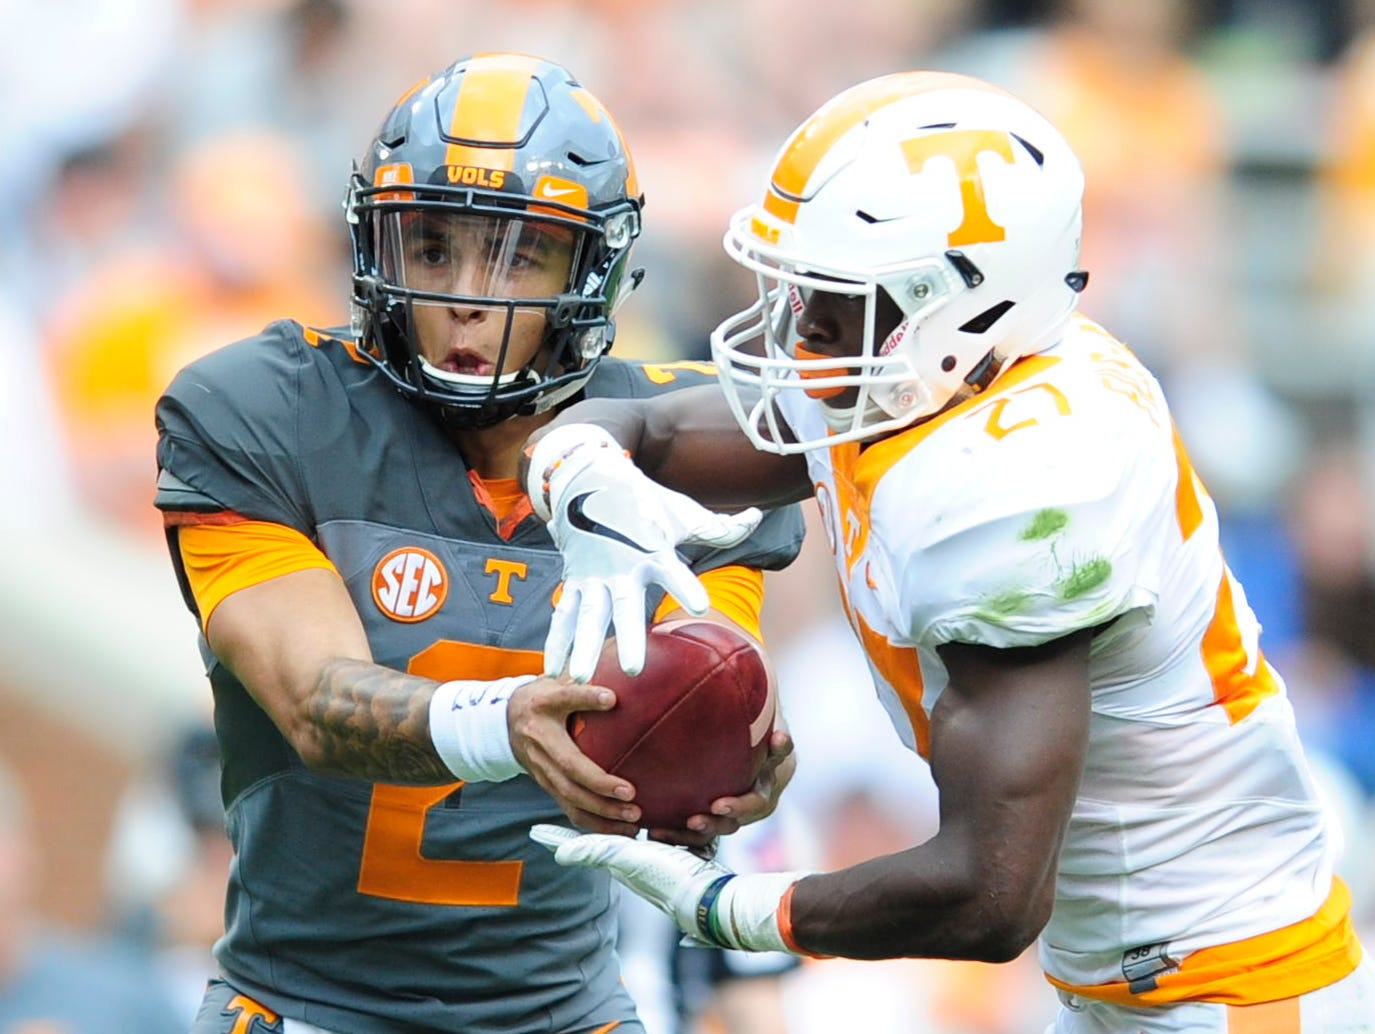 University of Tennessee's quarterback Jarrett Guarantano (2) hands the ball off to University of Tennessee's running back Carlin Fils-aime (27) during the Orange & White Game at Neyland Stadium in Knoxville, Tennessee on Saturday, April 22, 2017.